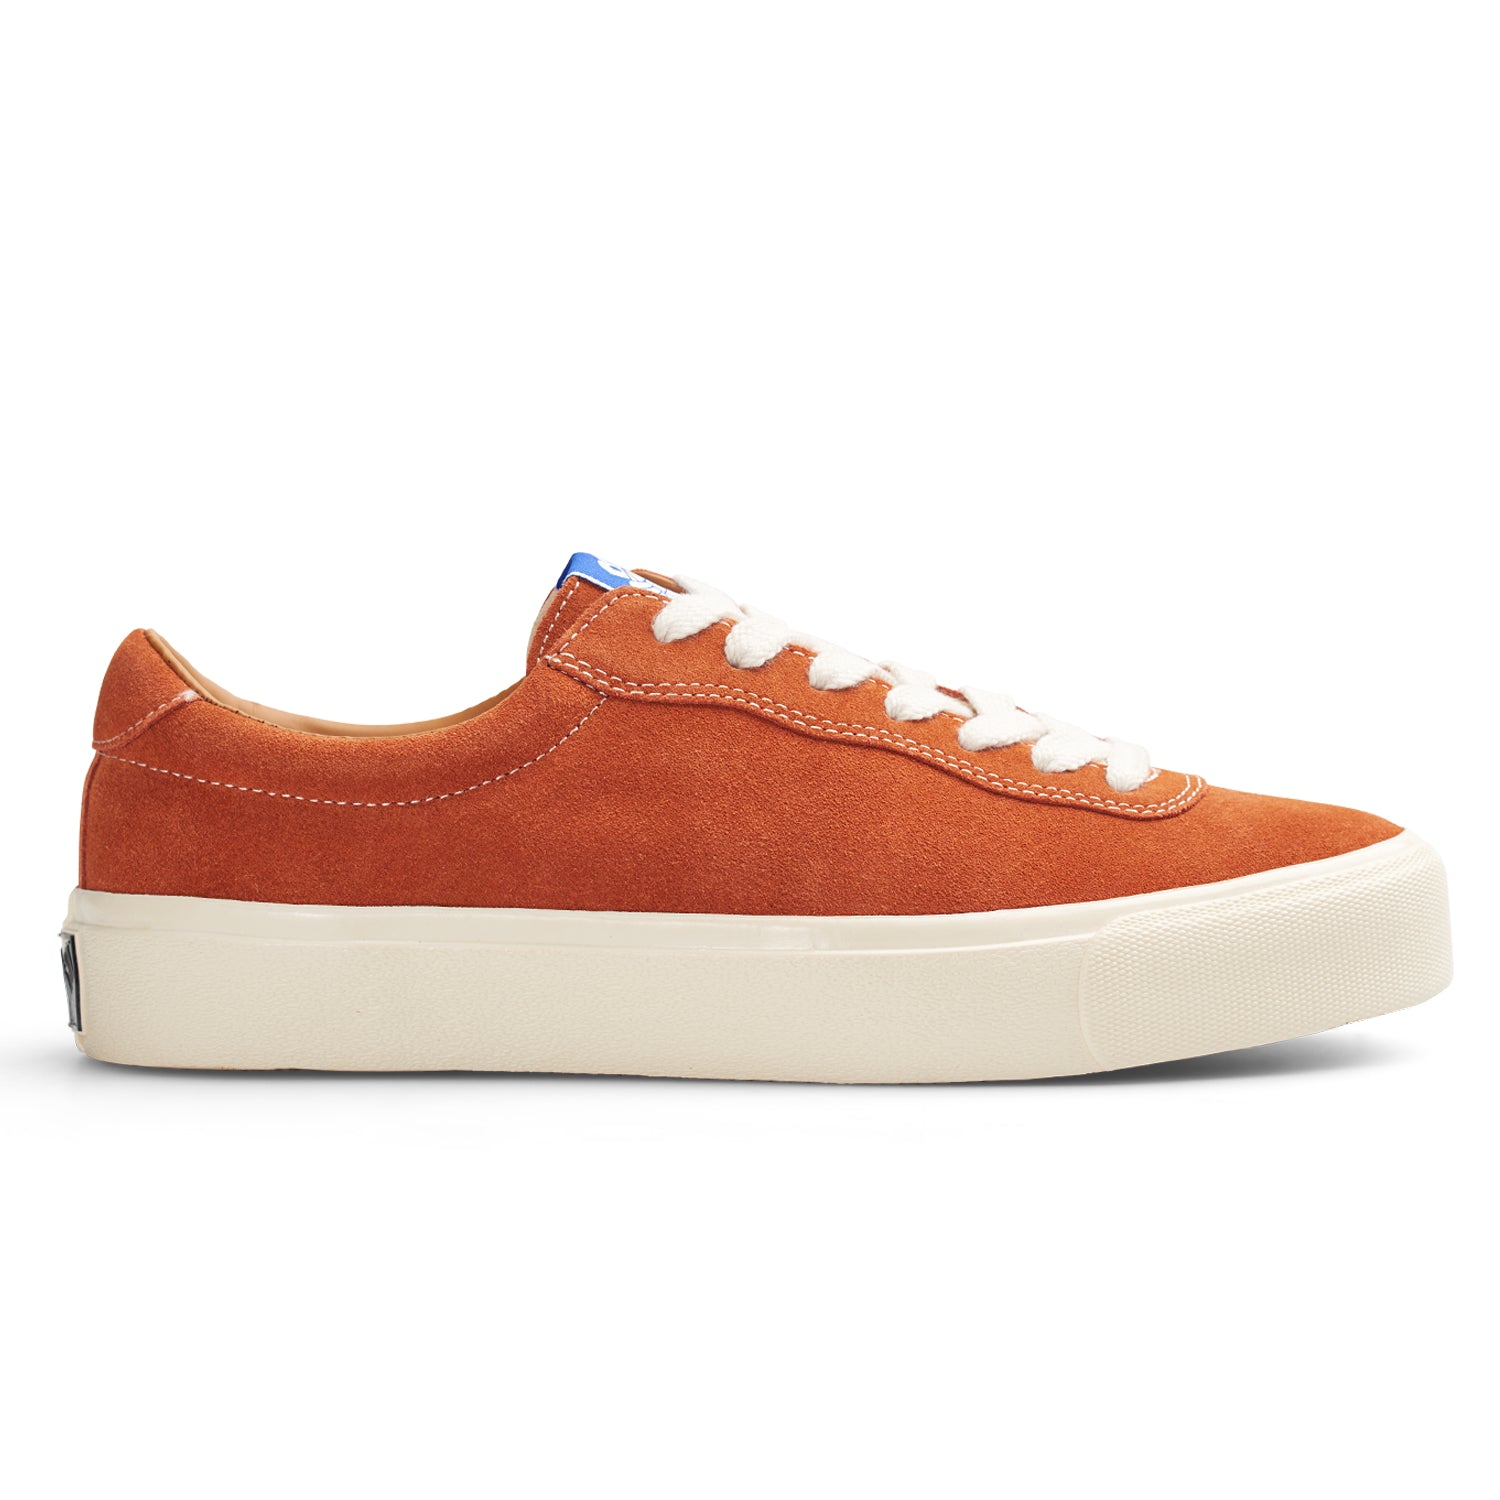 Last Resort AB VM001 Suede Lo Burnt Orange/White